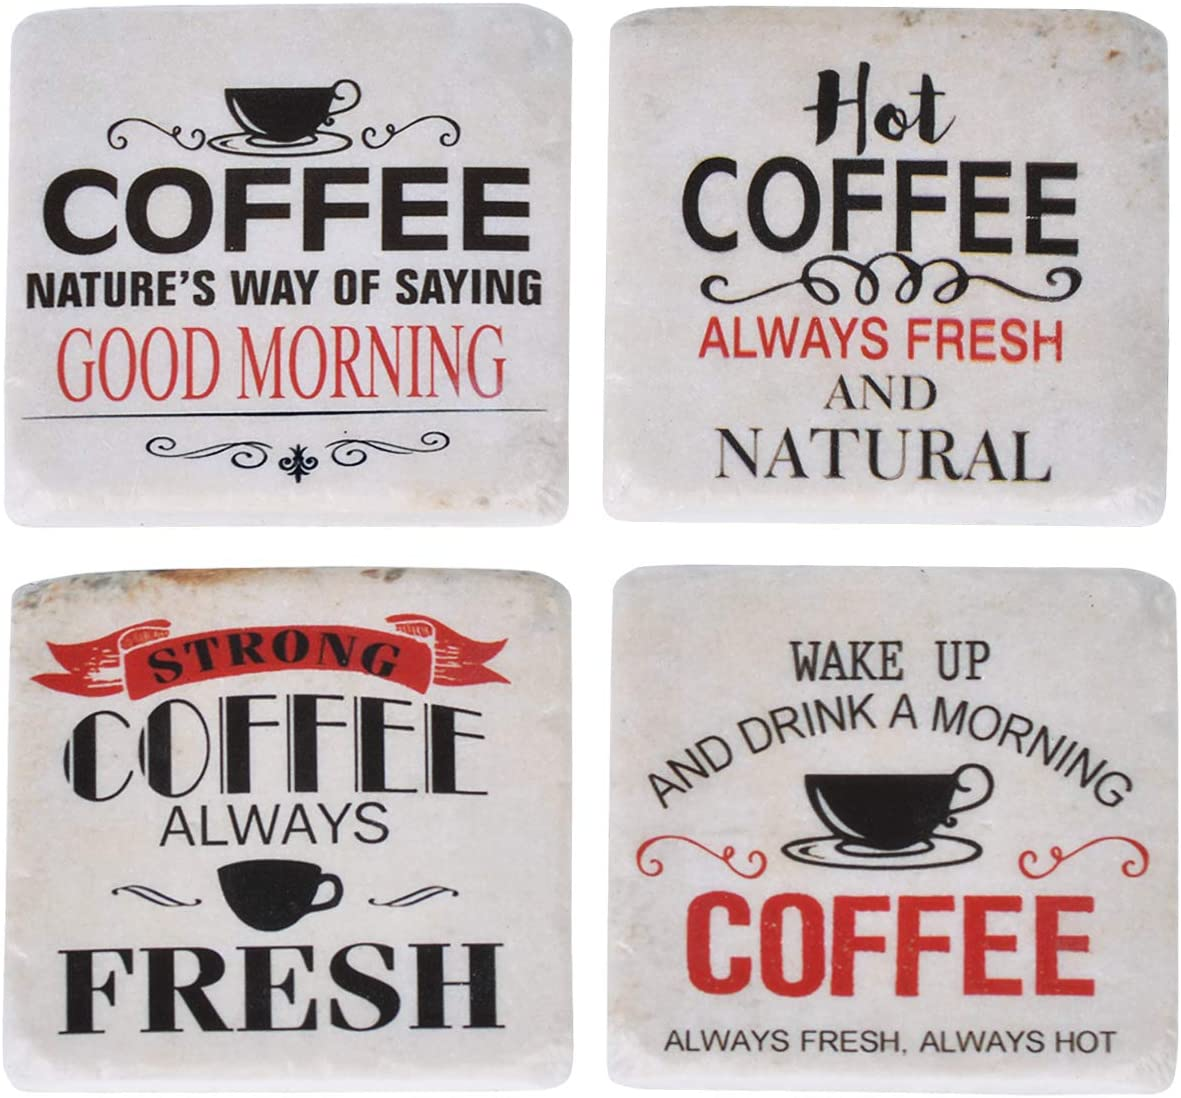 Nikky Home Funny Novelty Resin Coffee Drink Coasters 4 X 4 Set Of 4 Home Kitchen Home Decor